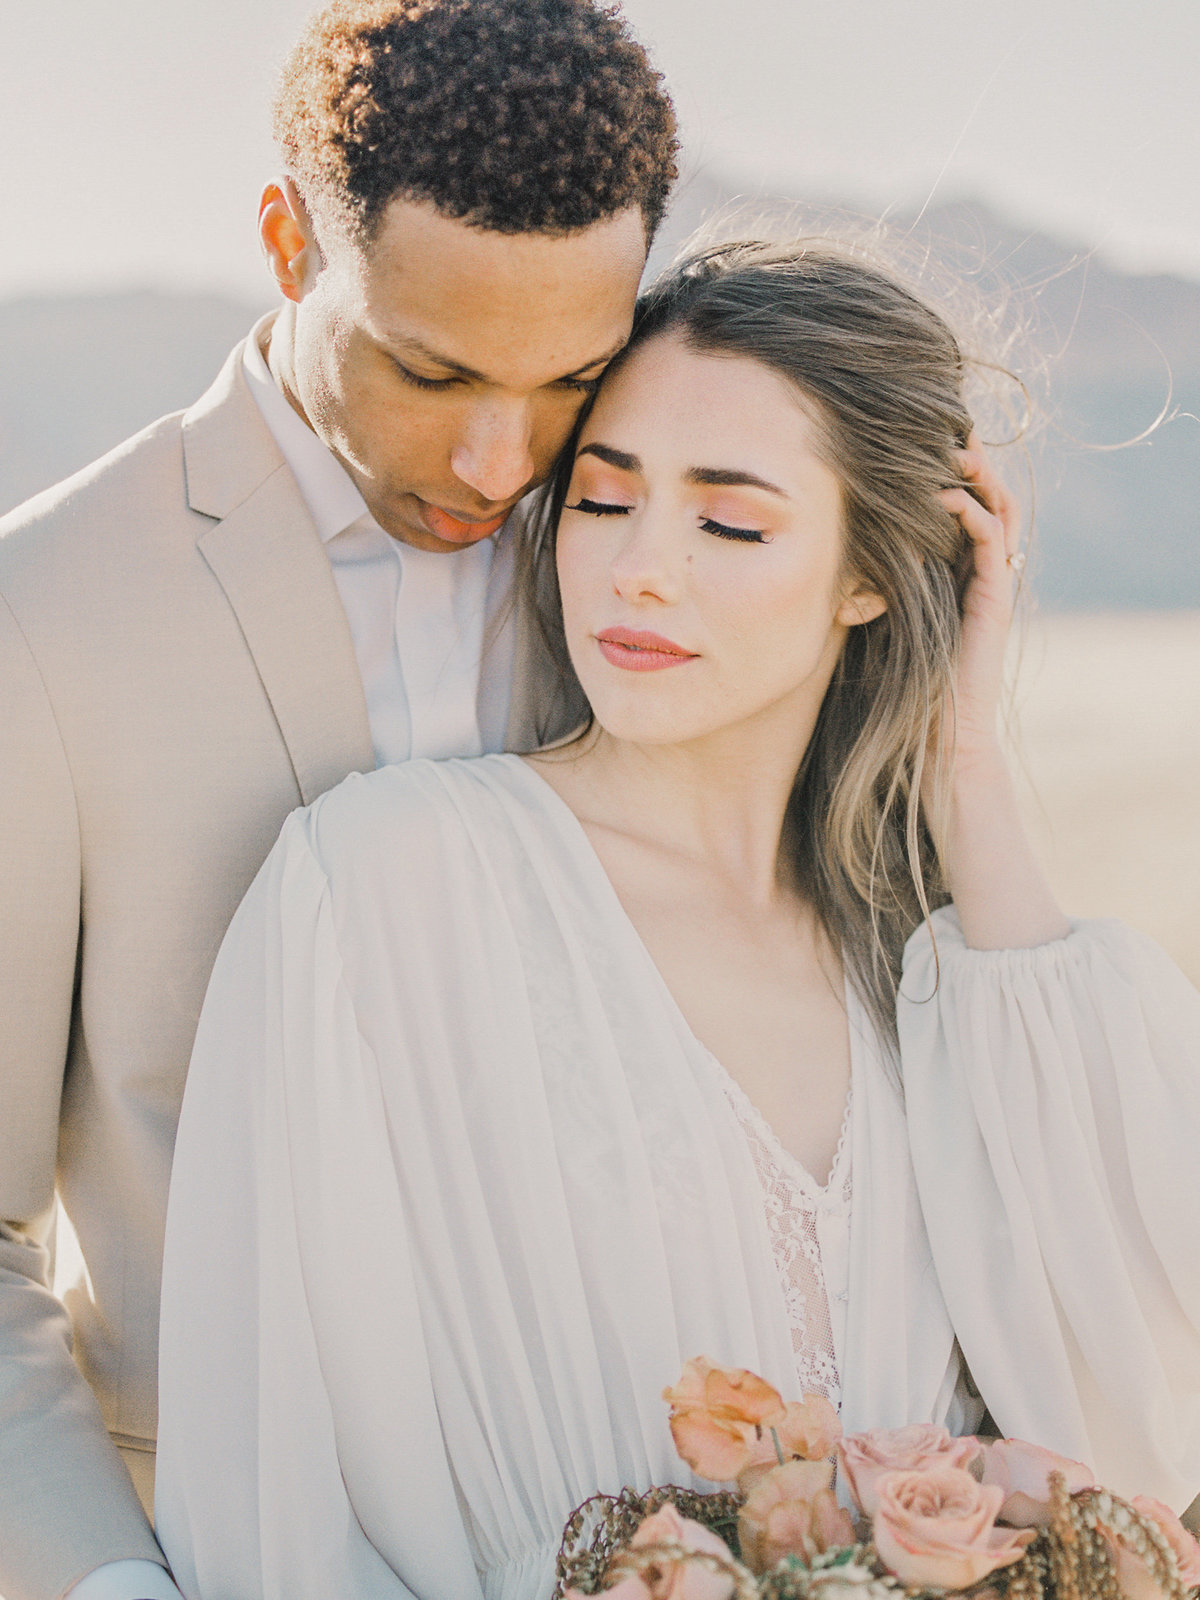 Babsie-Ly-Photography-Red-Rock-Canyon-Las-Vegas-Wedding-Elopement-Fine-Art-Film-domenica-domenica-robe-006